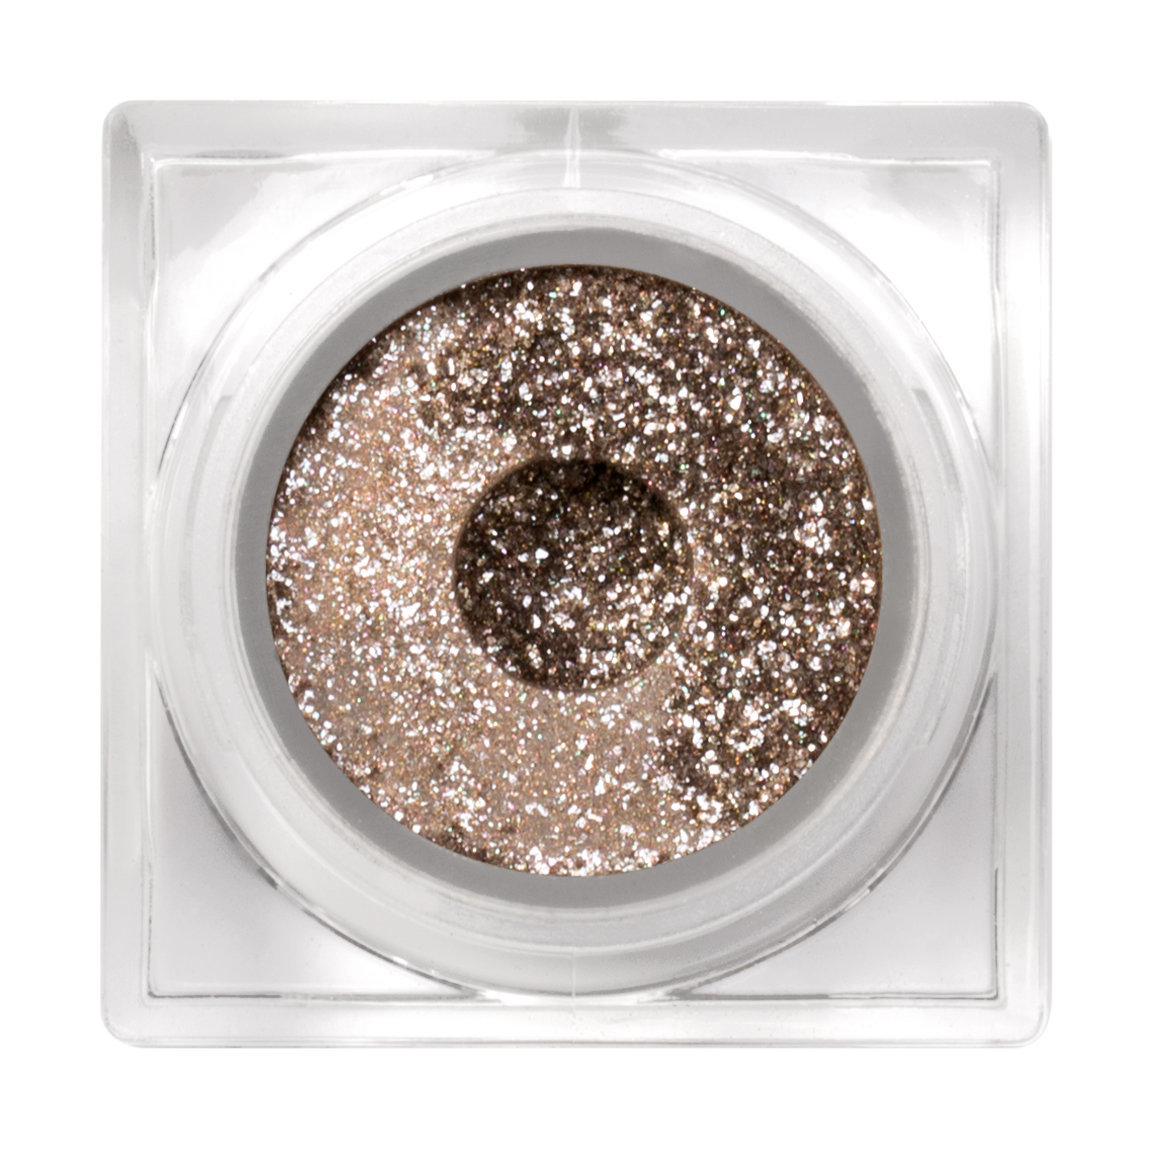 Lit Cosmetics Lit Metals Crave (Silver) alternative view 1 - product swatch.